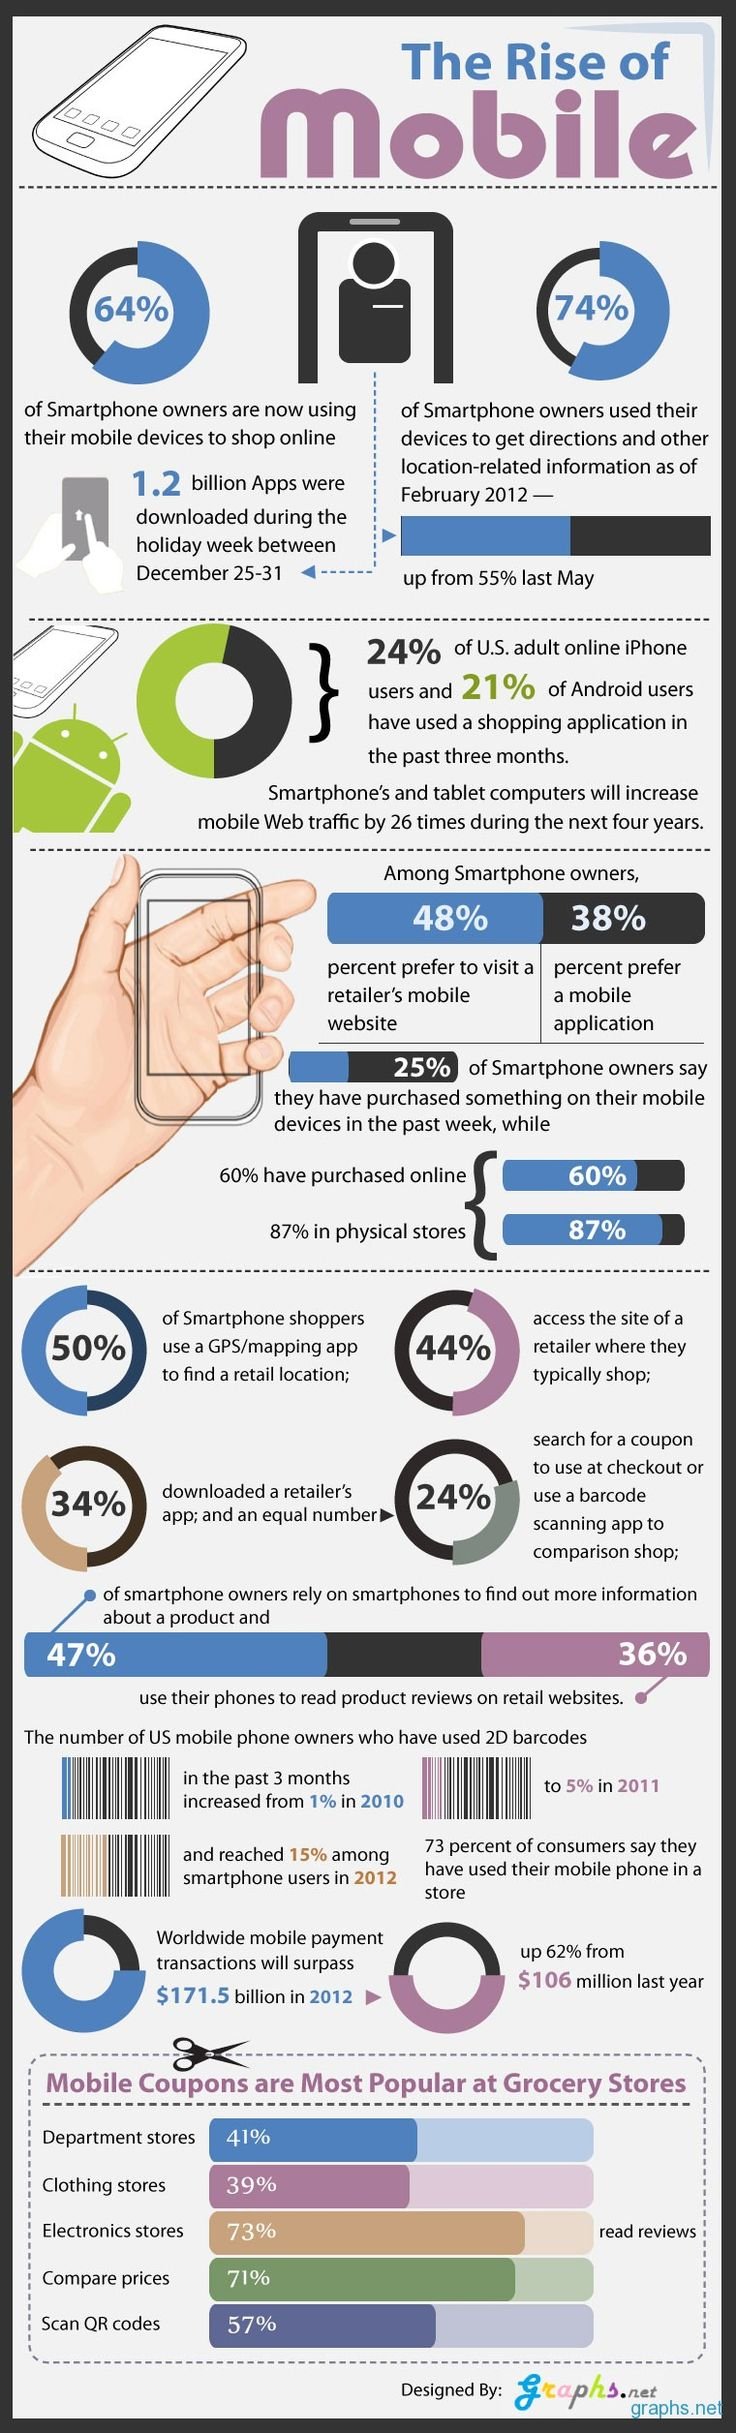 The major players switched to mobile years ago (IE:walmart, coca cola, target..etc) ! In phase 2 they updated their video marketing. So what is next and are you still on the sidelines? Now is the time to go mobile and this infographic tells you why..